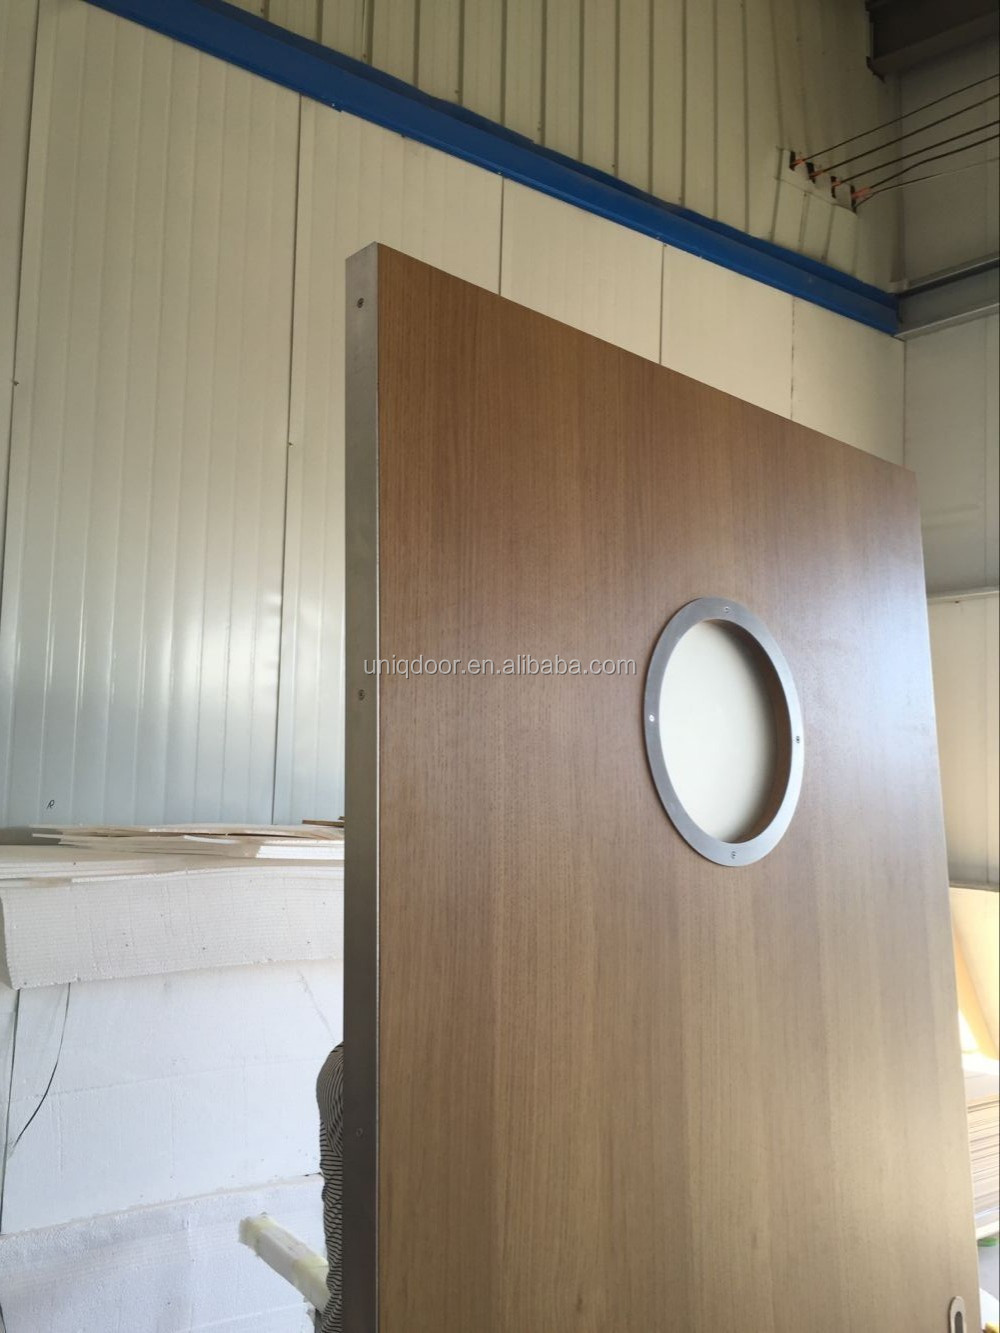 Four Points By Sheraton Round Tempered Glass Insert